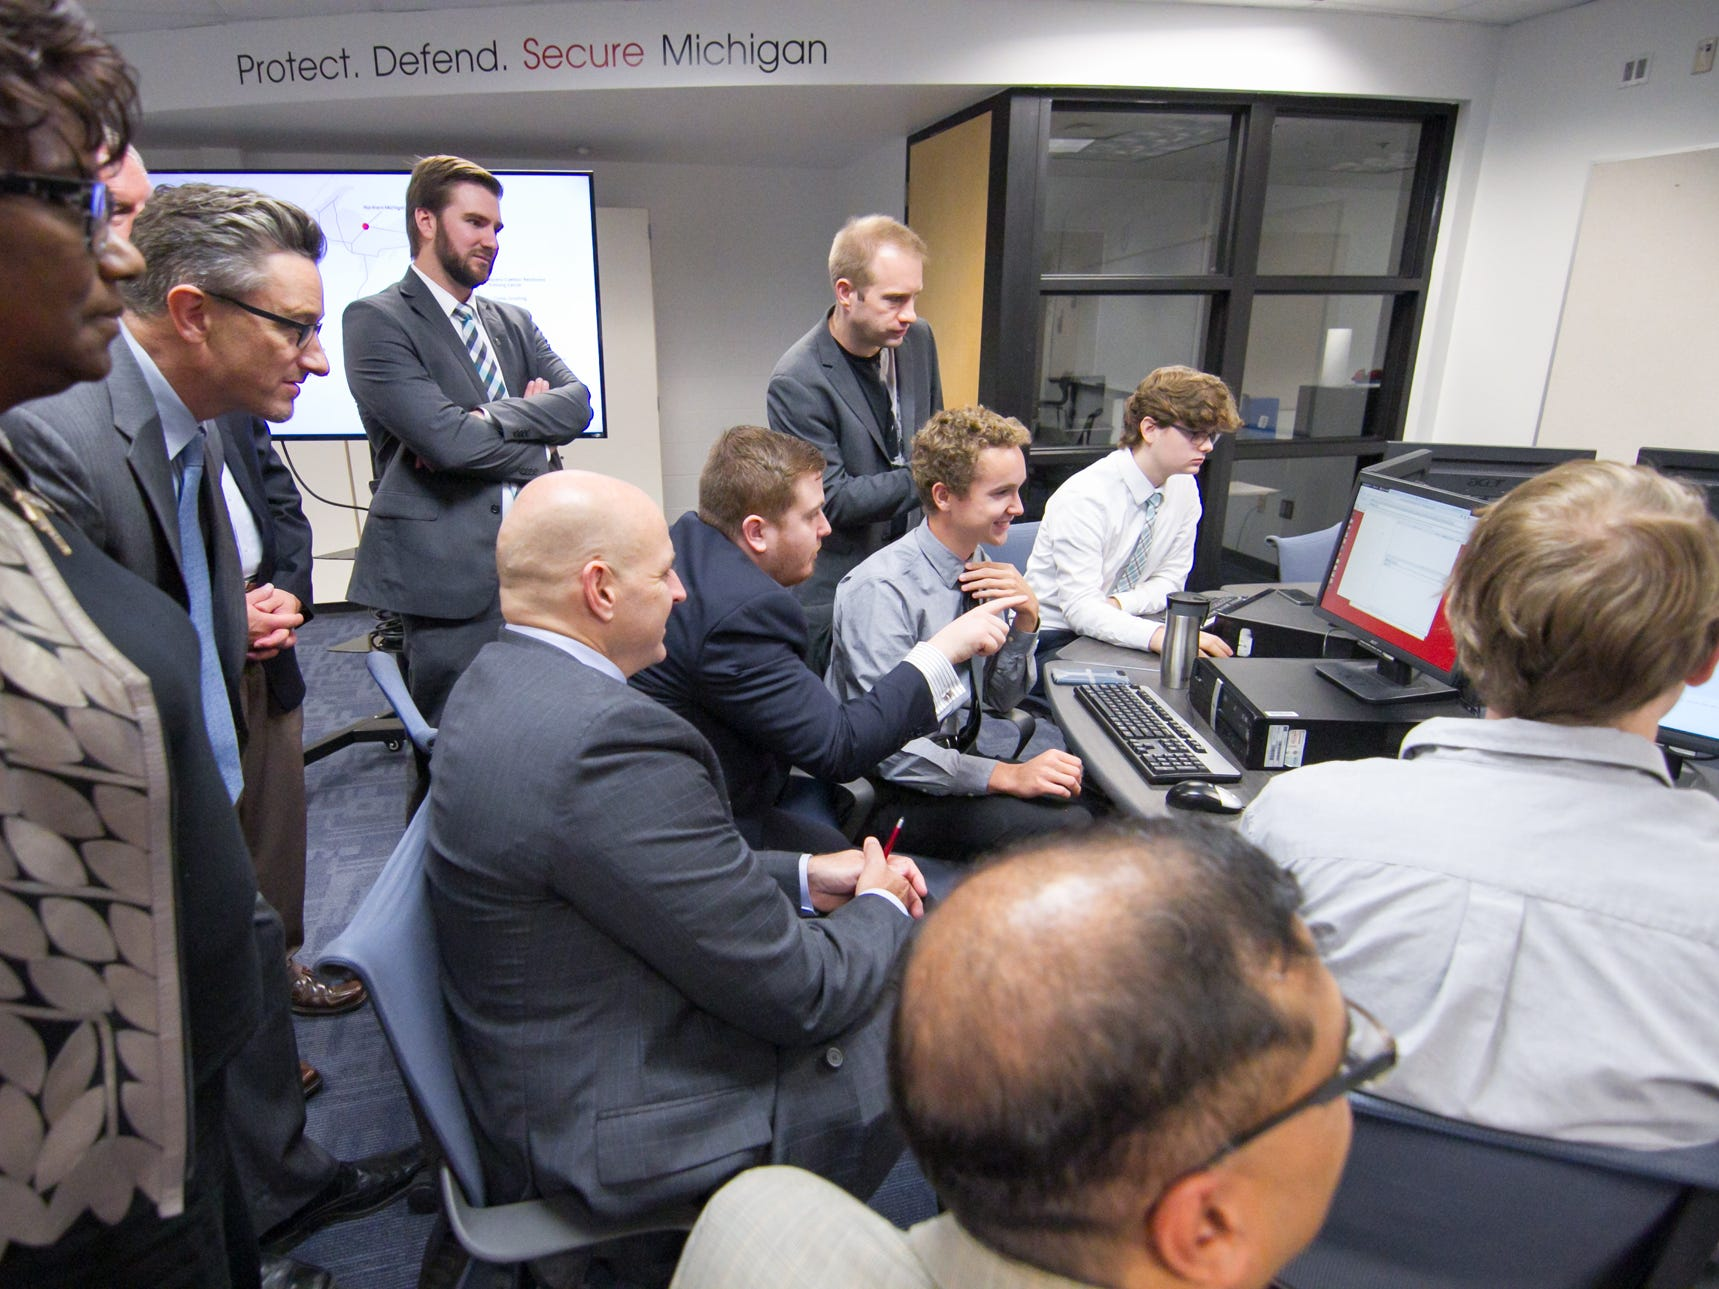 """IBM executives touring the Pinckney Cyber Training Institute Tuesday, Oct. 9, 2018 appear to get into a game of """"capture the flag"""" students are playing."""